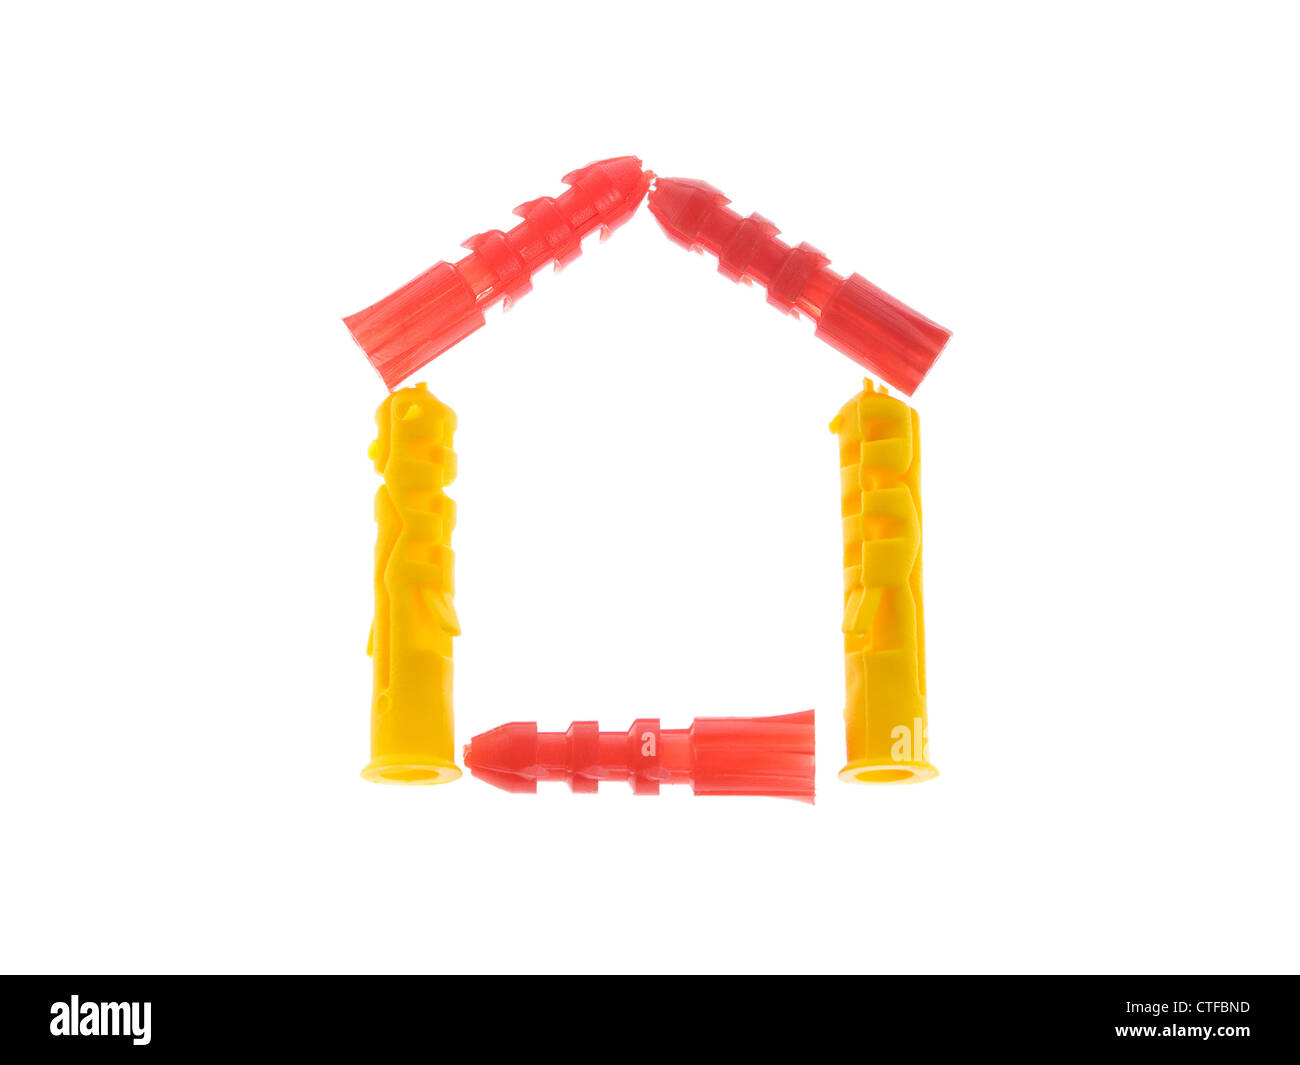 House made of Dowels Isolated on White Background - Stock Image